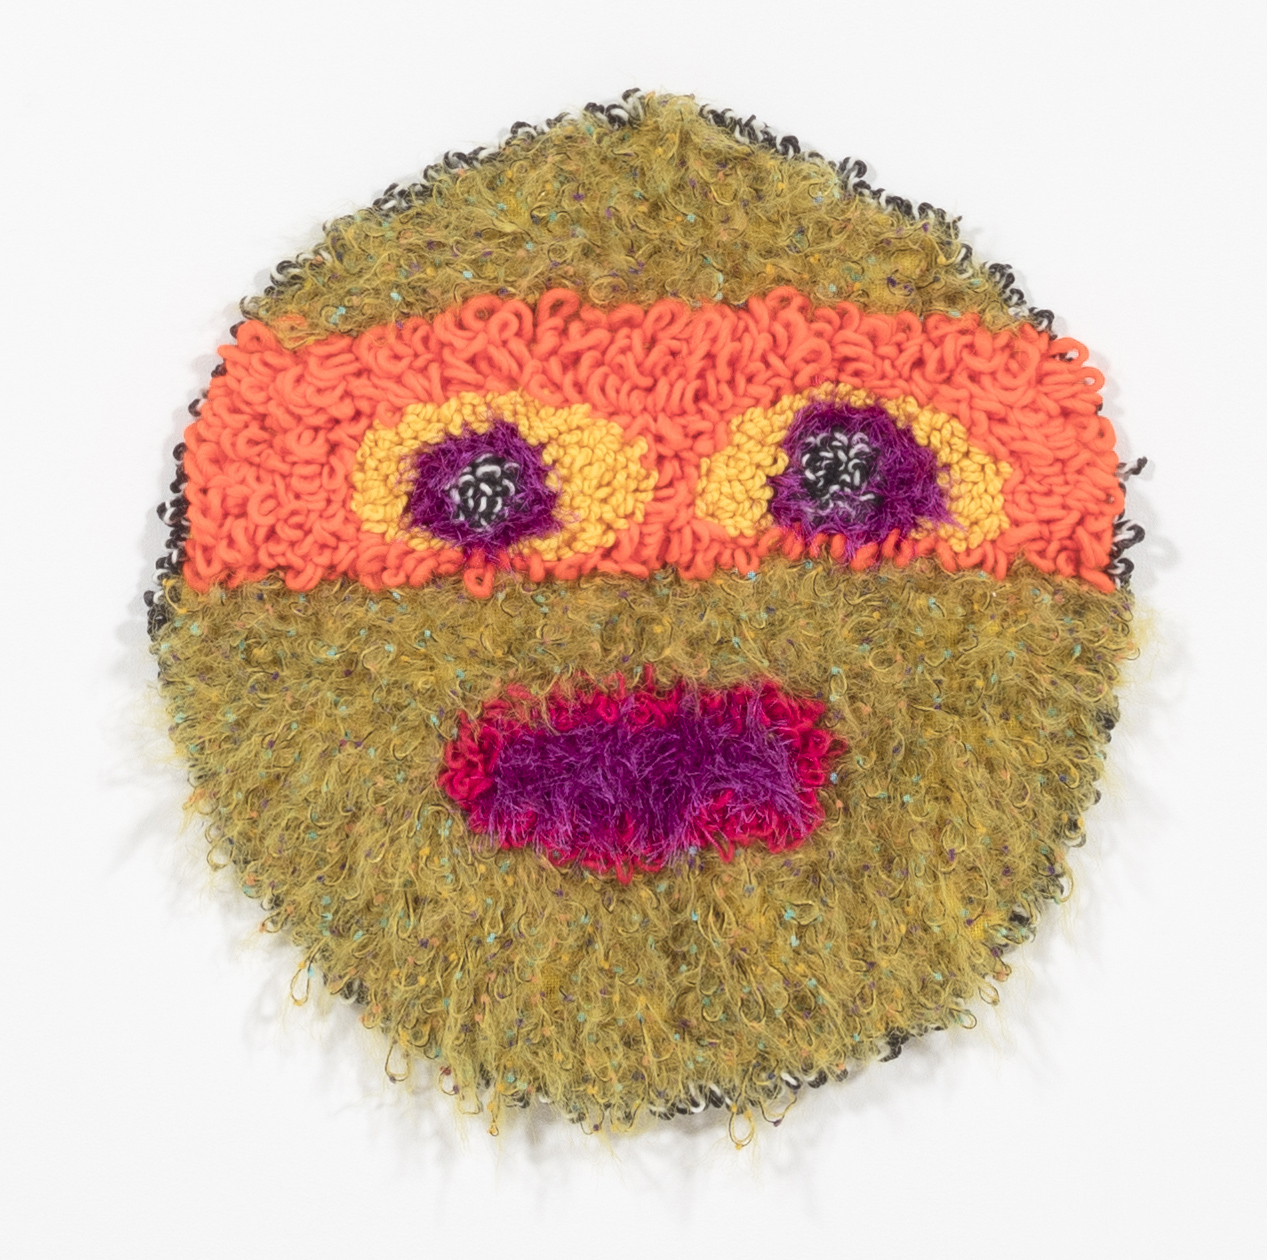 Hannah Epstein. <em>Planet Accidental Ninja Turtle</em>, 2018. Wool, acrylic and polyester, 21 x 21 inches (53.3 x 53.3 cm)